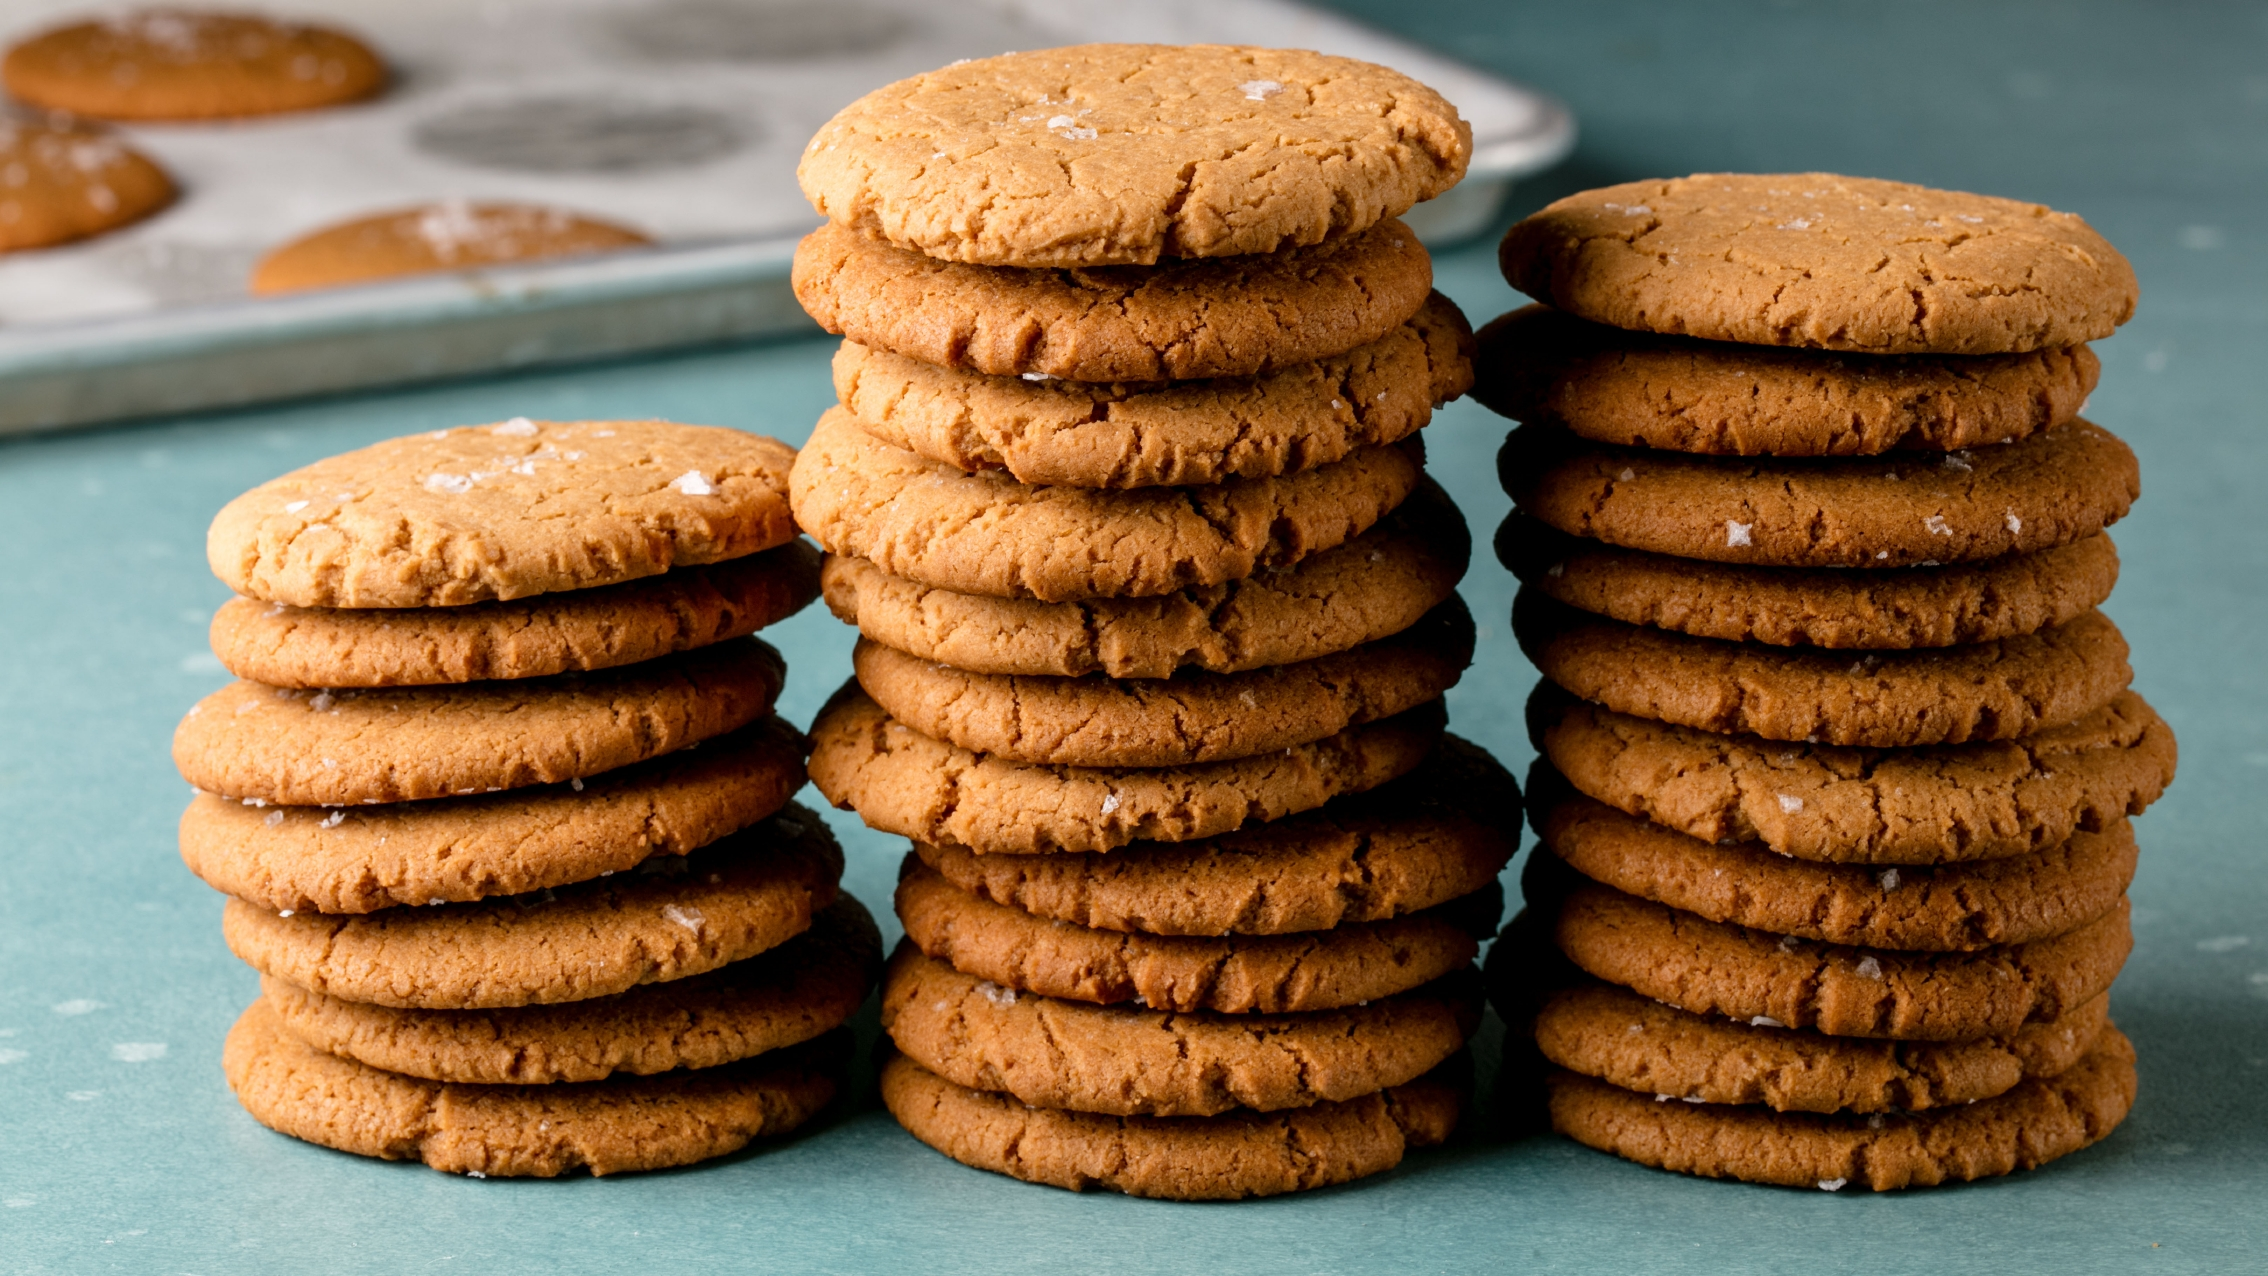 Chewy Browned Coconut Butter Cookies - Cook's Illustrated | Cook's Illustrated